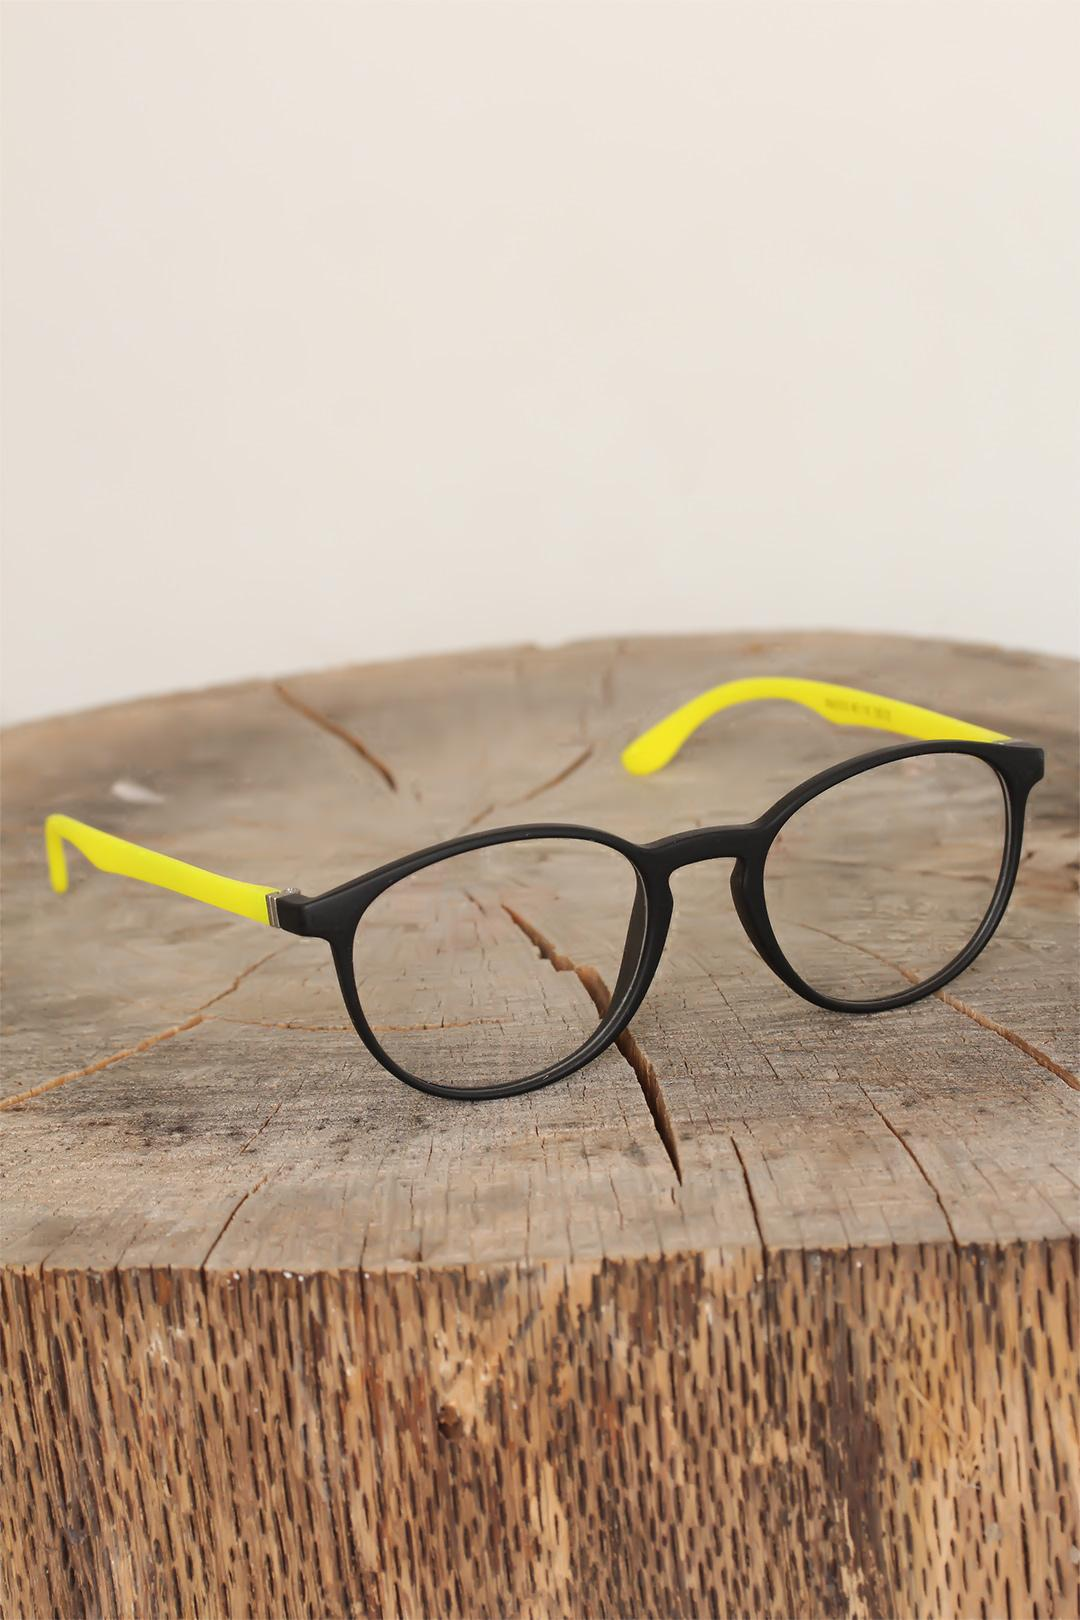 Women's Black Oval Frame Yellow Arms Glasses